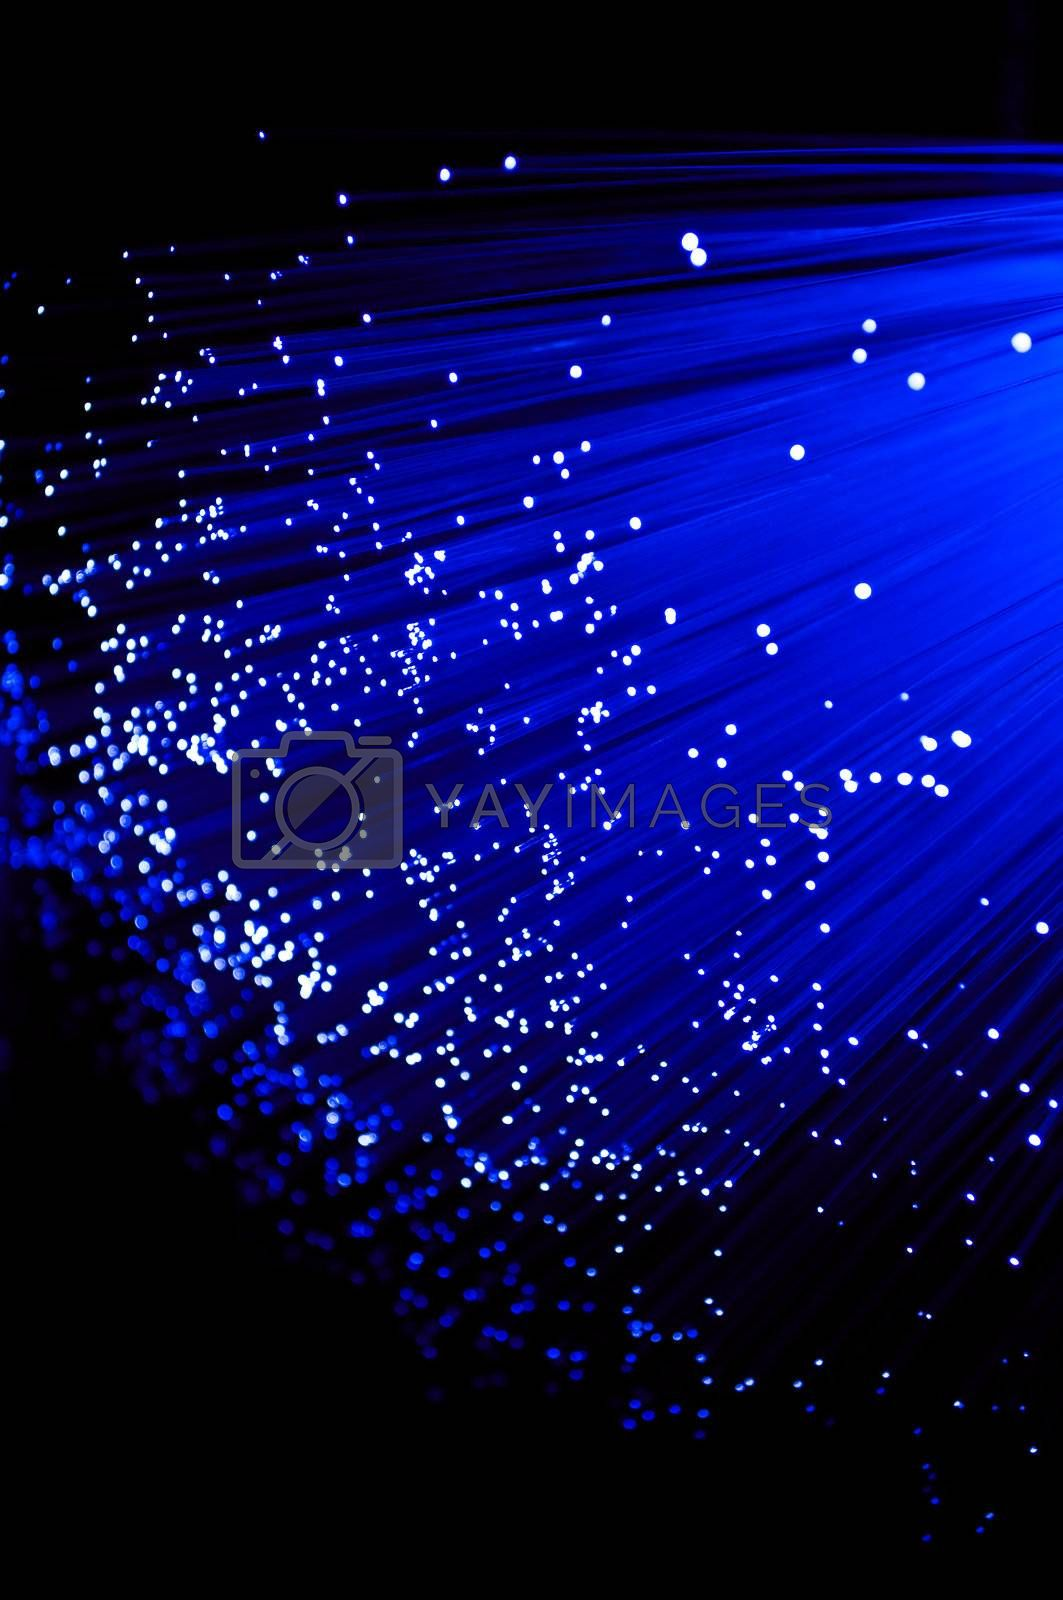 Close up on ends of many illuminated deep blue fibre optic strands with black background.